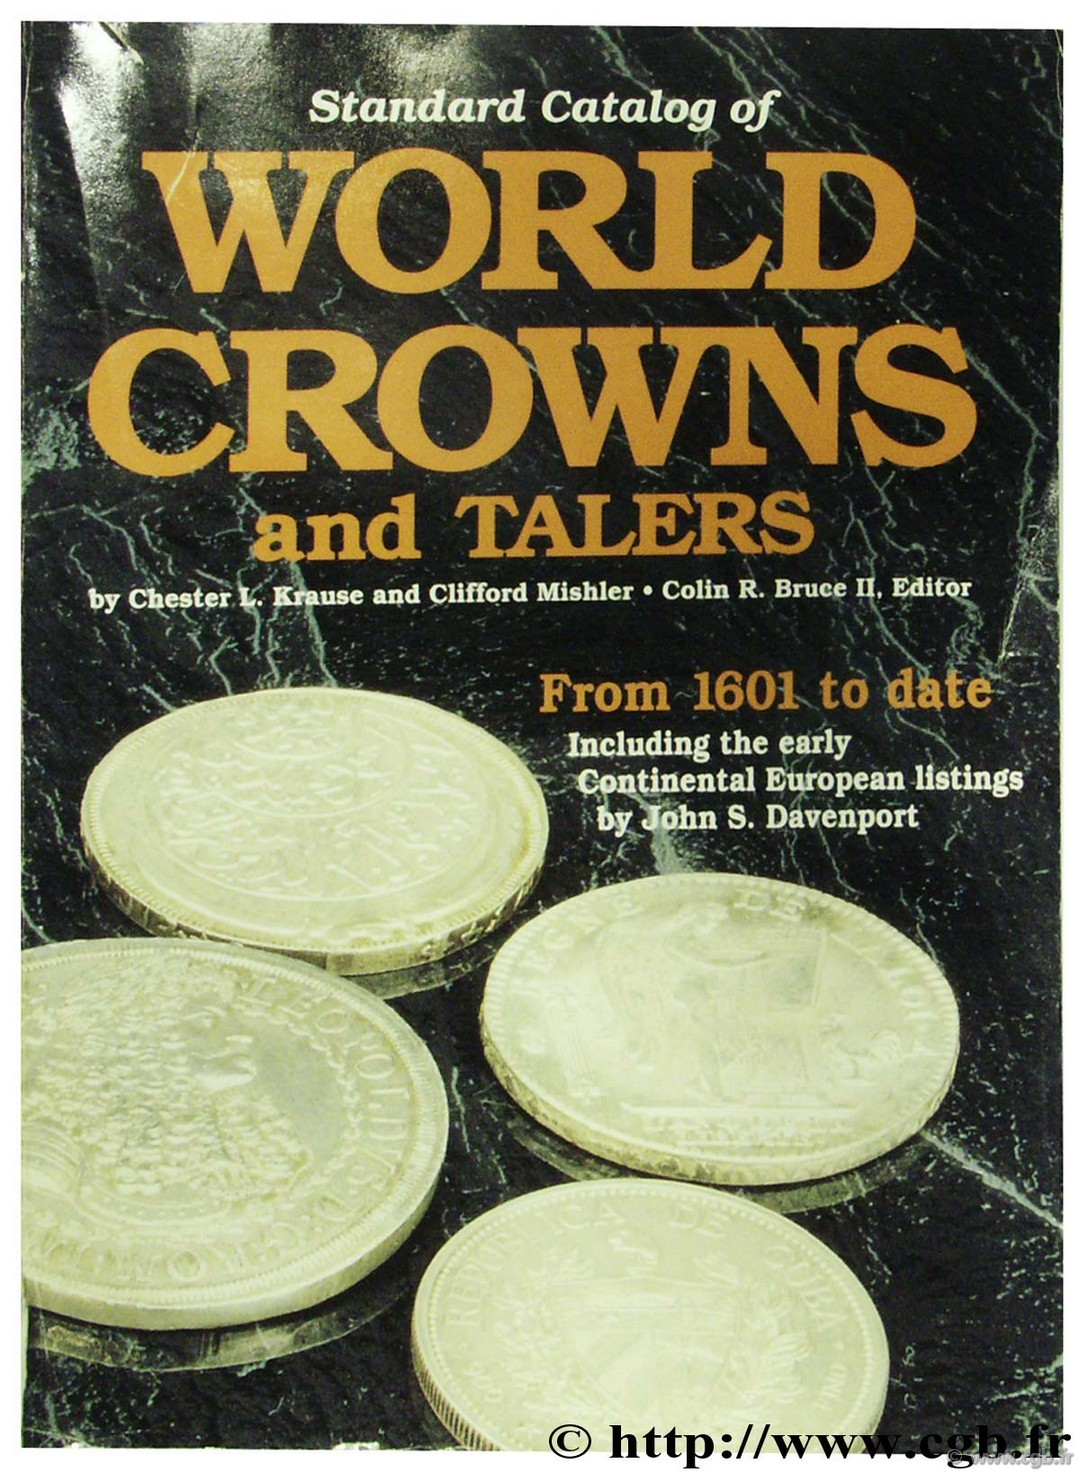 Standard Catalogue of World Crowns and Thalers, from 1601 to date KRAUSE C.-L., MISHLER C.